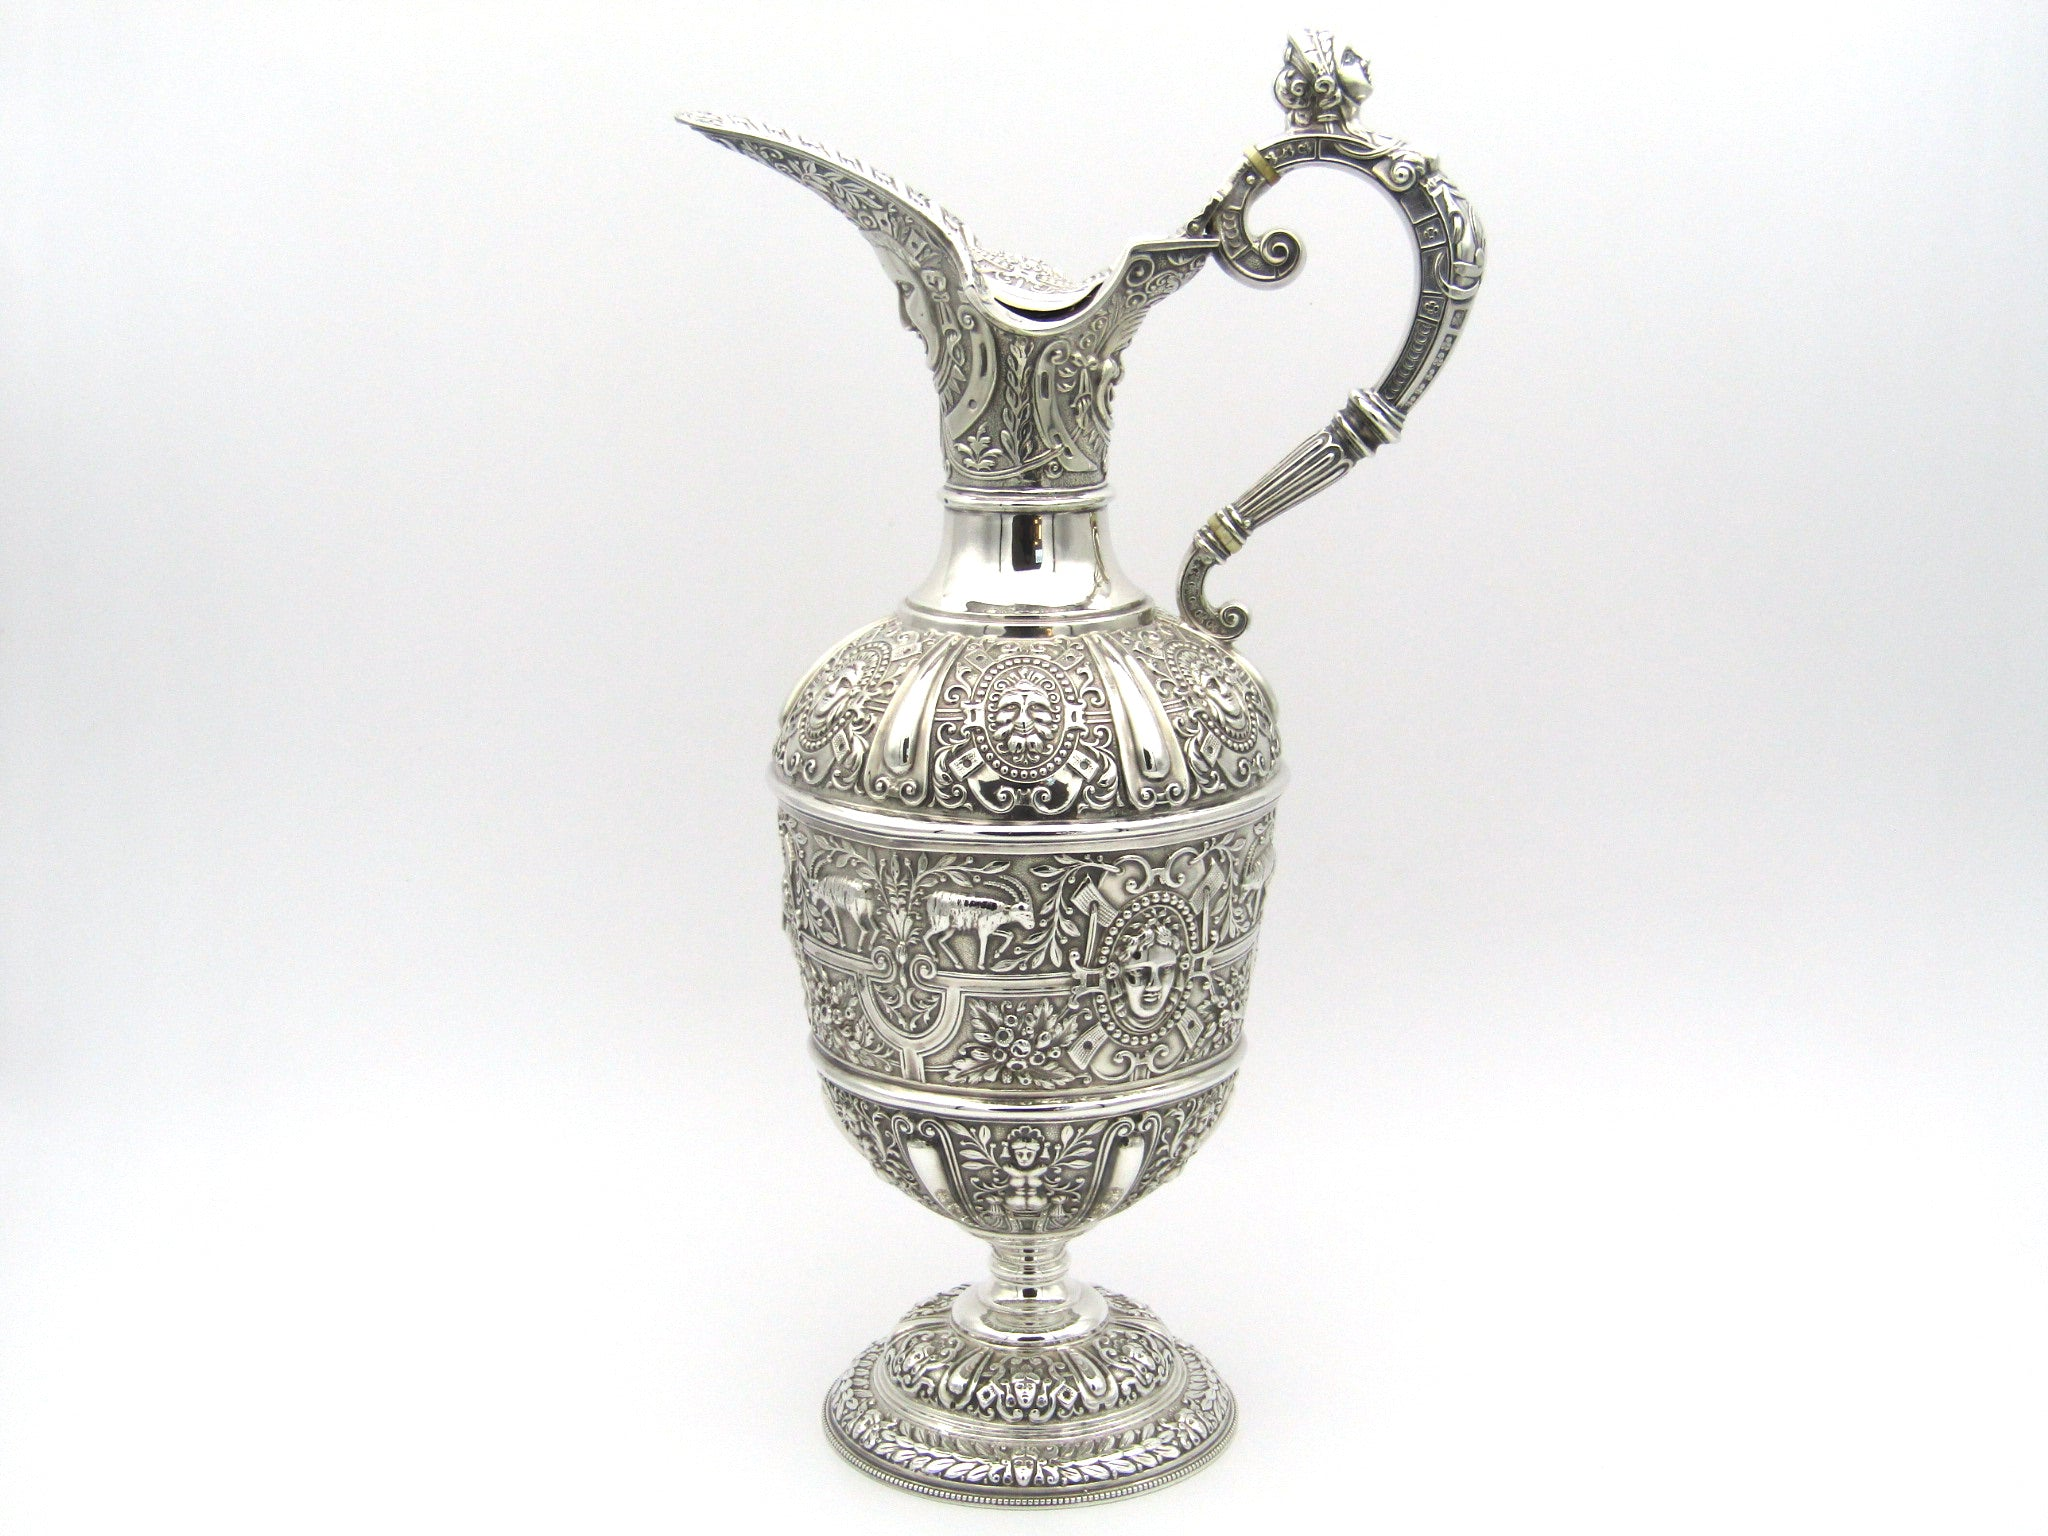 Cellini silver claret jug by James Dixon & Sons, Sheffield 1900.